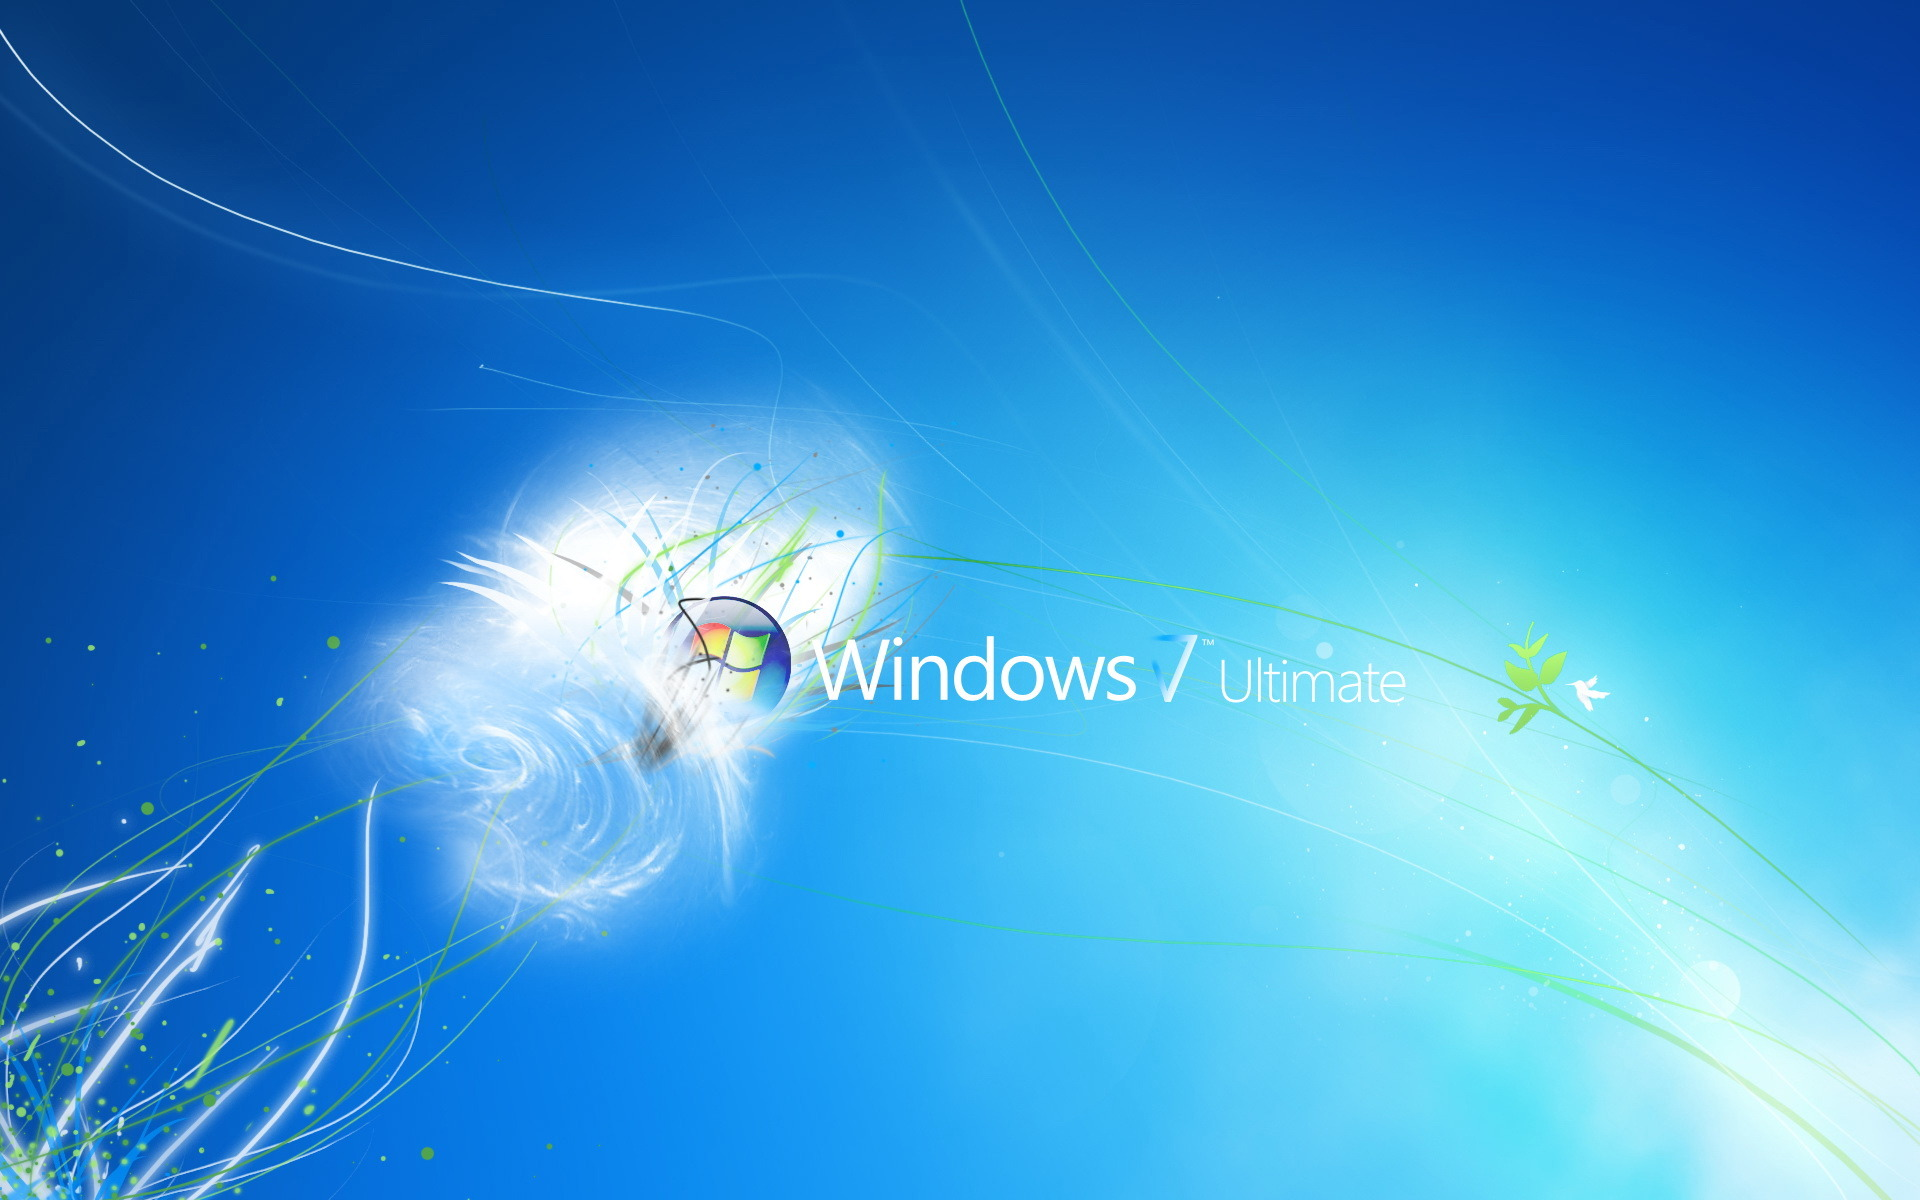 Windows 7 ultimate wallpaper hd wallpapersafari home windows 7 final hd wallpapers hd images new 1920x1200 voltagebd Choice Image